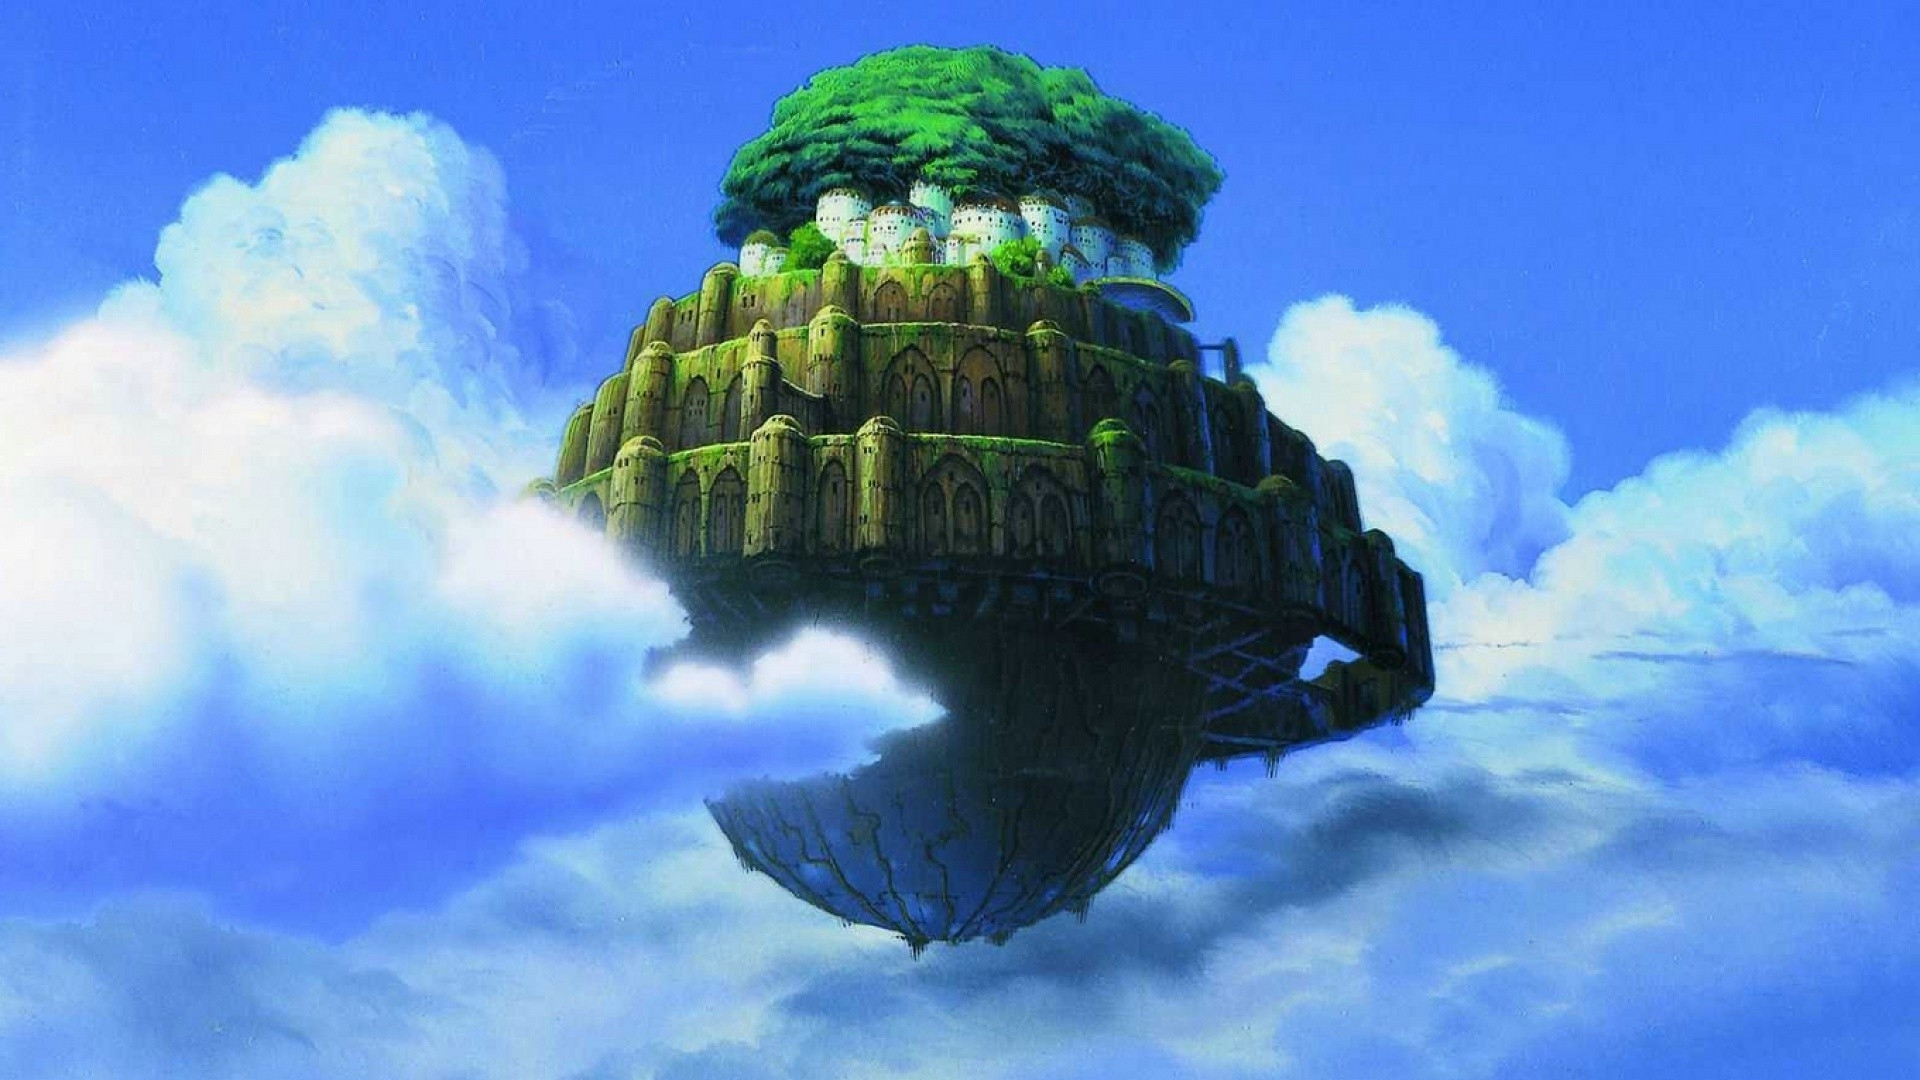 castle in the sky wallpaper (70+ images)